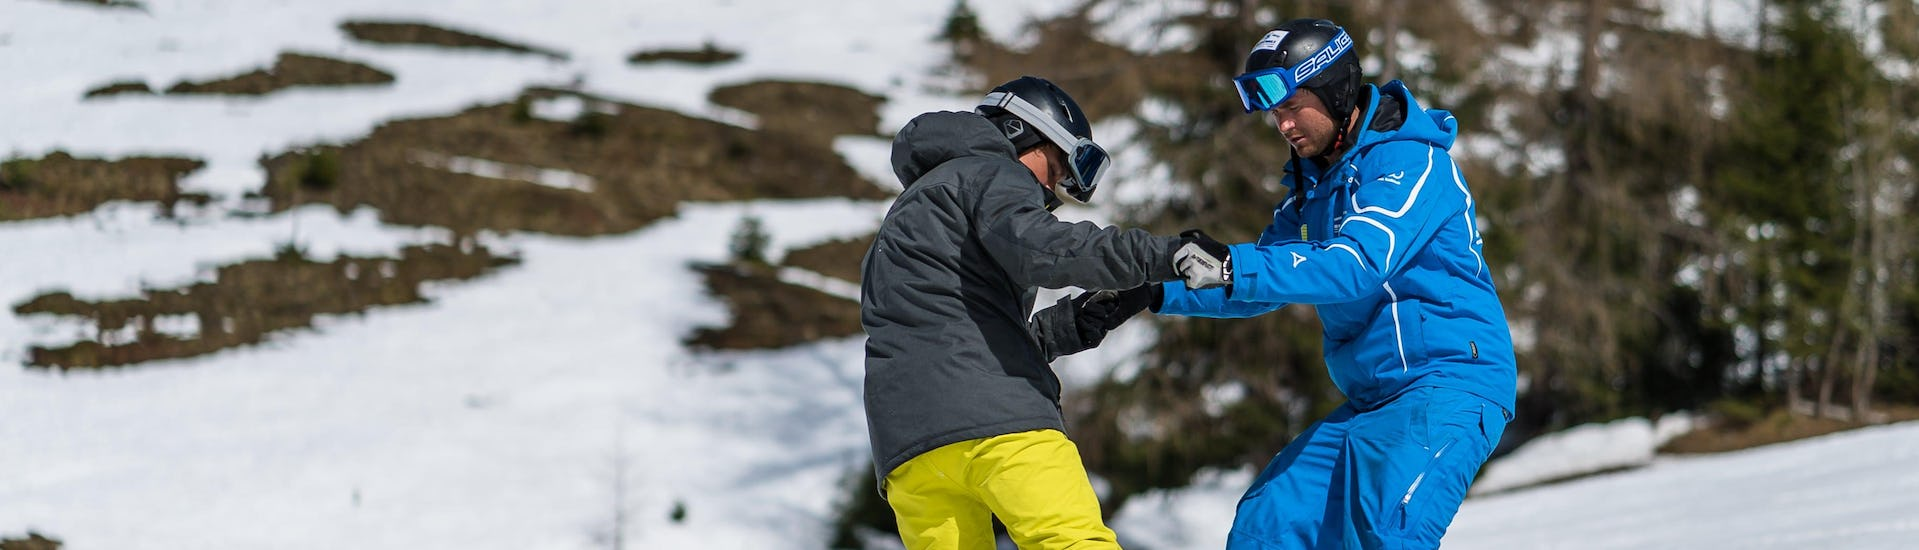 Snowboard Lessons Adults incl. equipment - All Levels